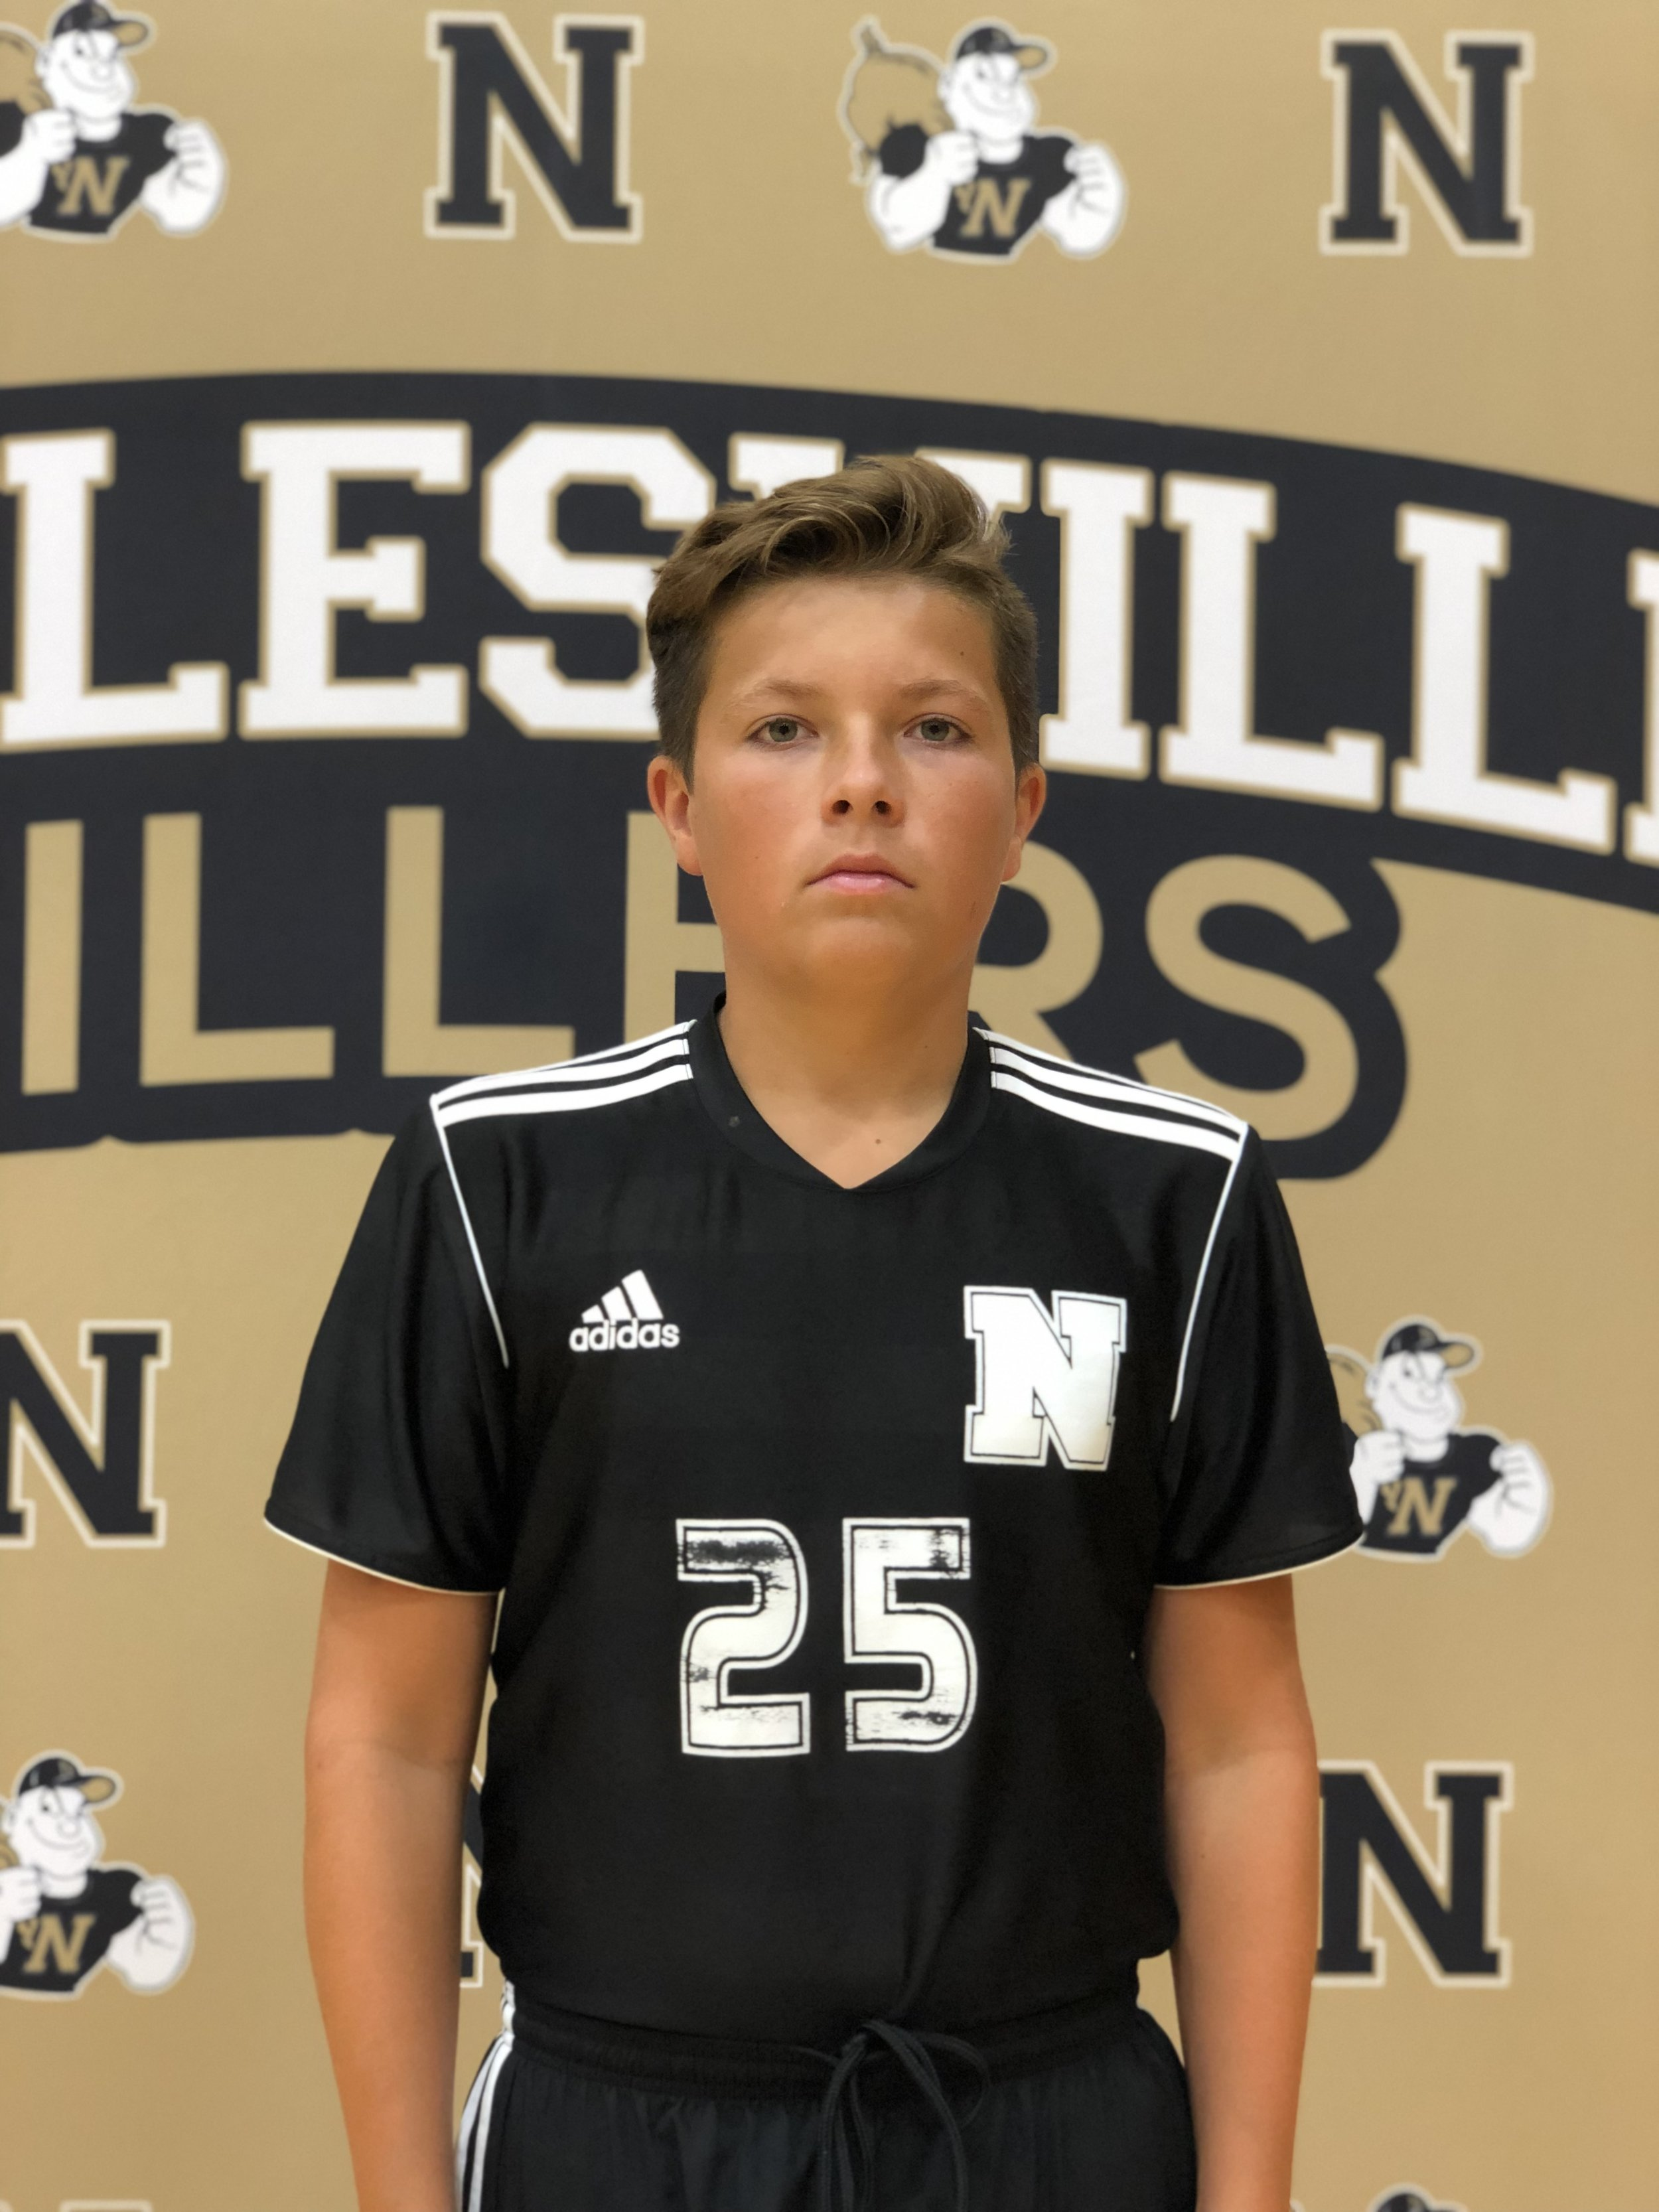 #25 Gabe Fryling (M) Class of 2023